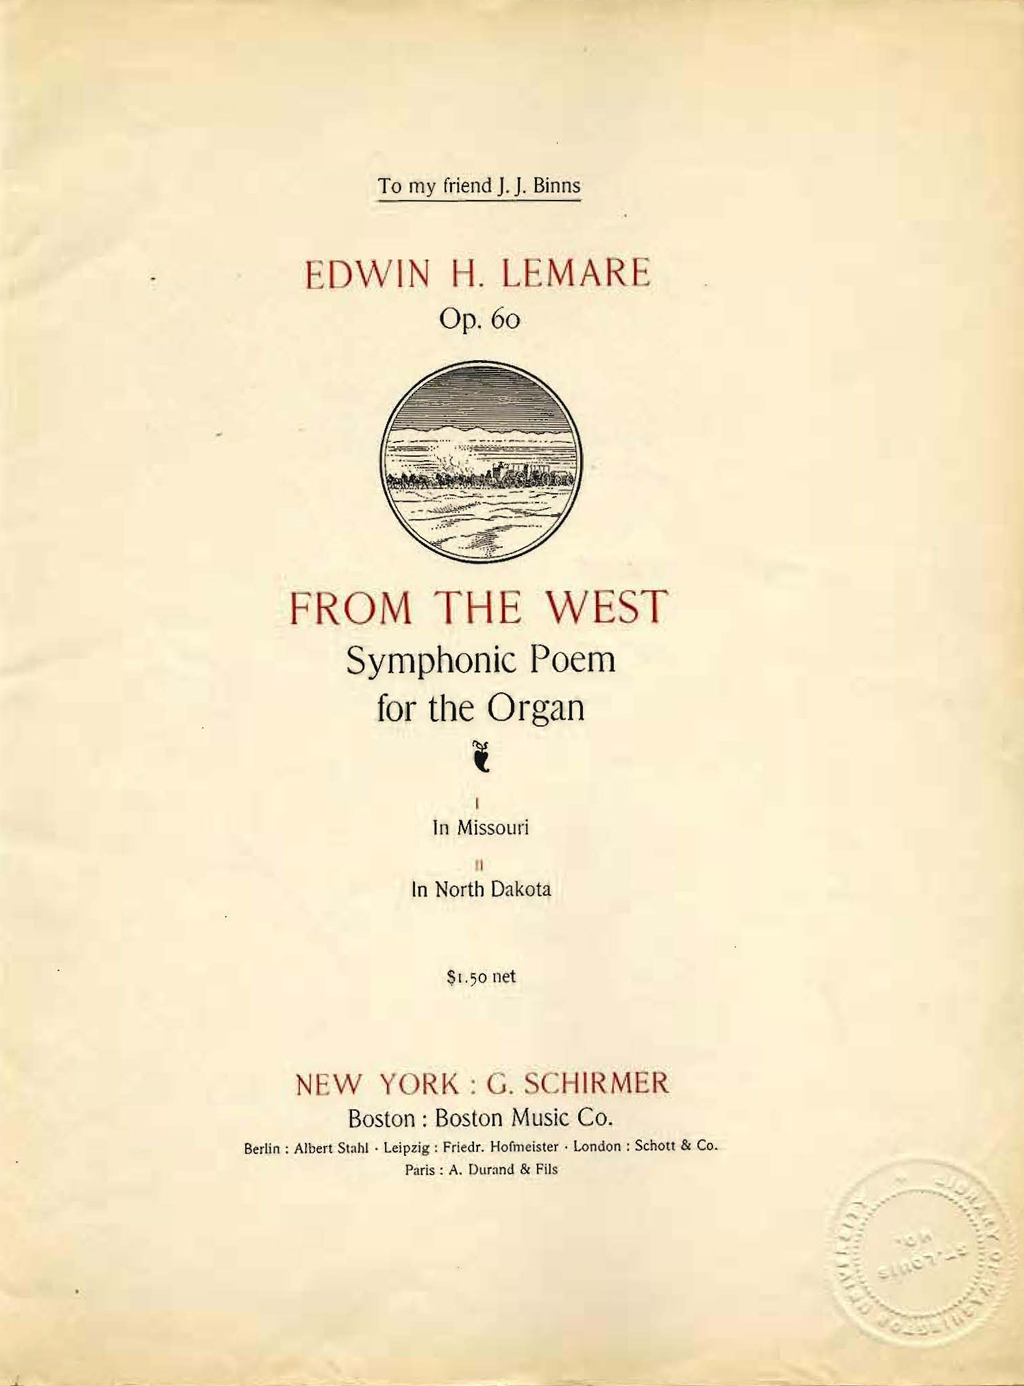 From the West: Symphonic Organ Poem by Edwin H. Lemare (New York: G. Schirmer and Boston: Boston Music Co., 1909).